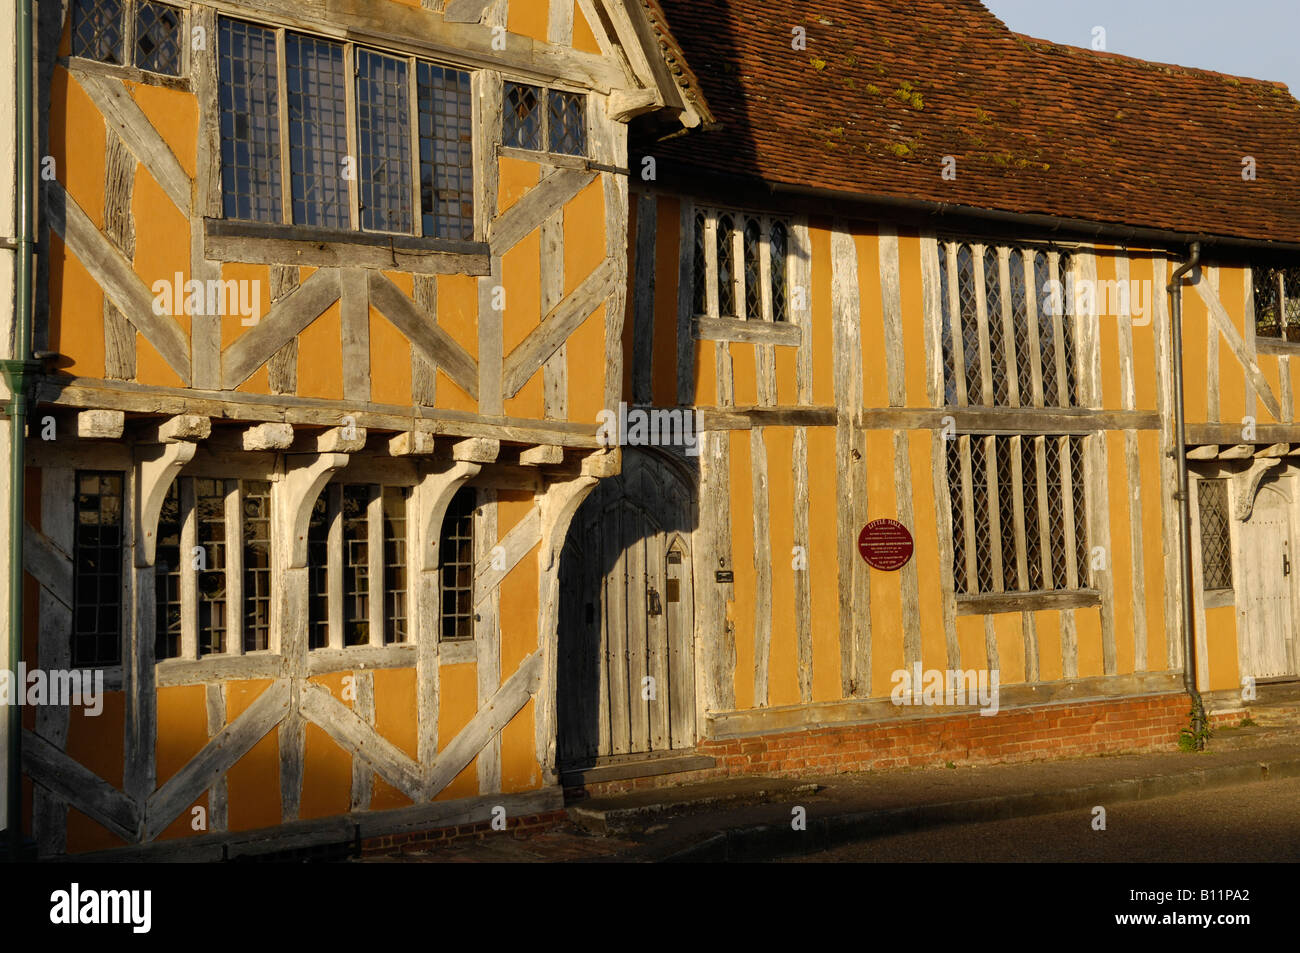 The Little Hall in Lavenham Suffolk England UK - Stock Image